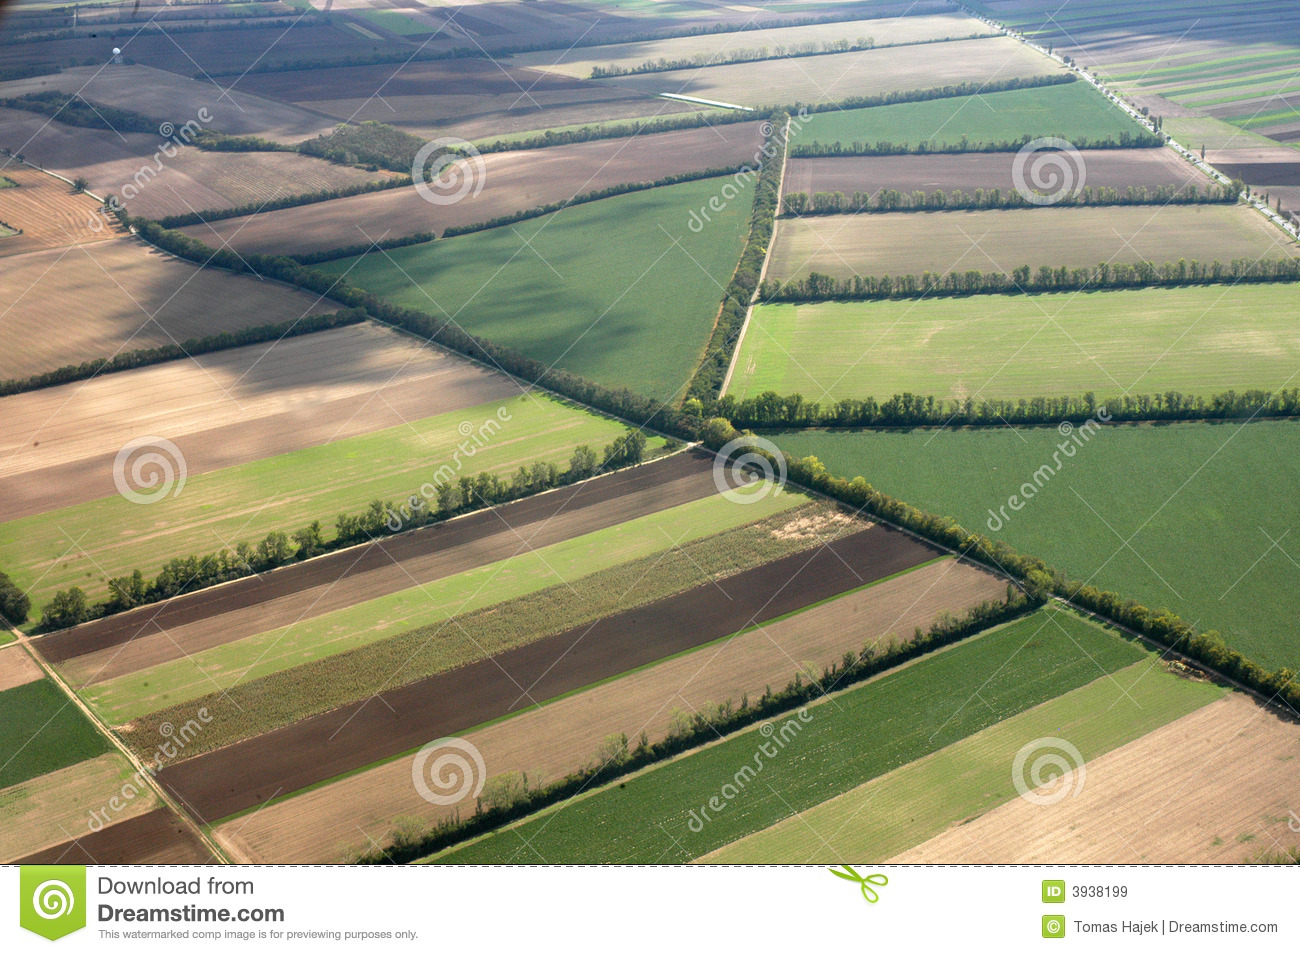 Download Aerial View Of Farm Fields Stock Image Growth